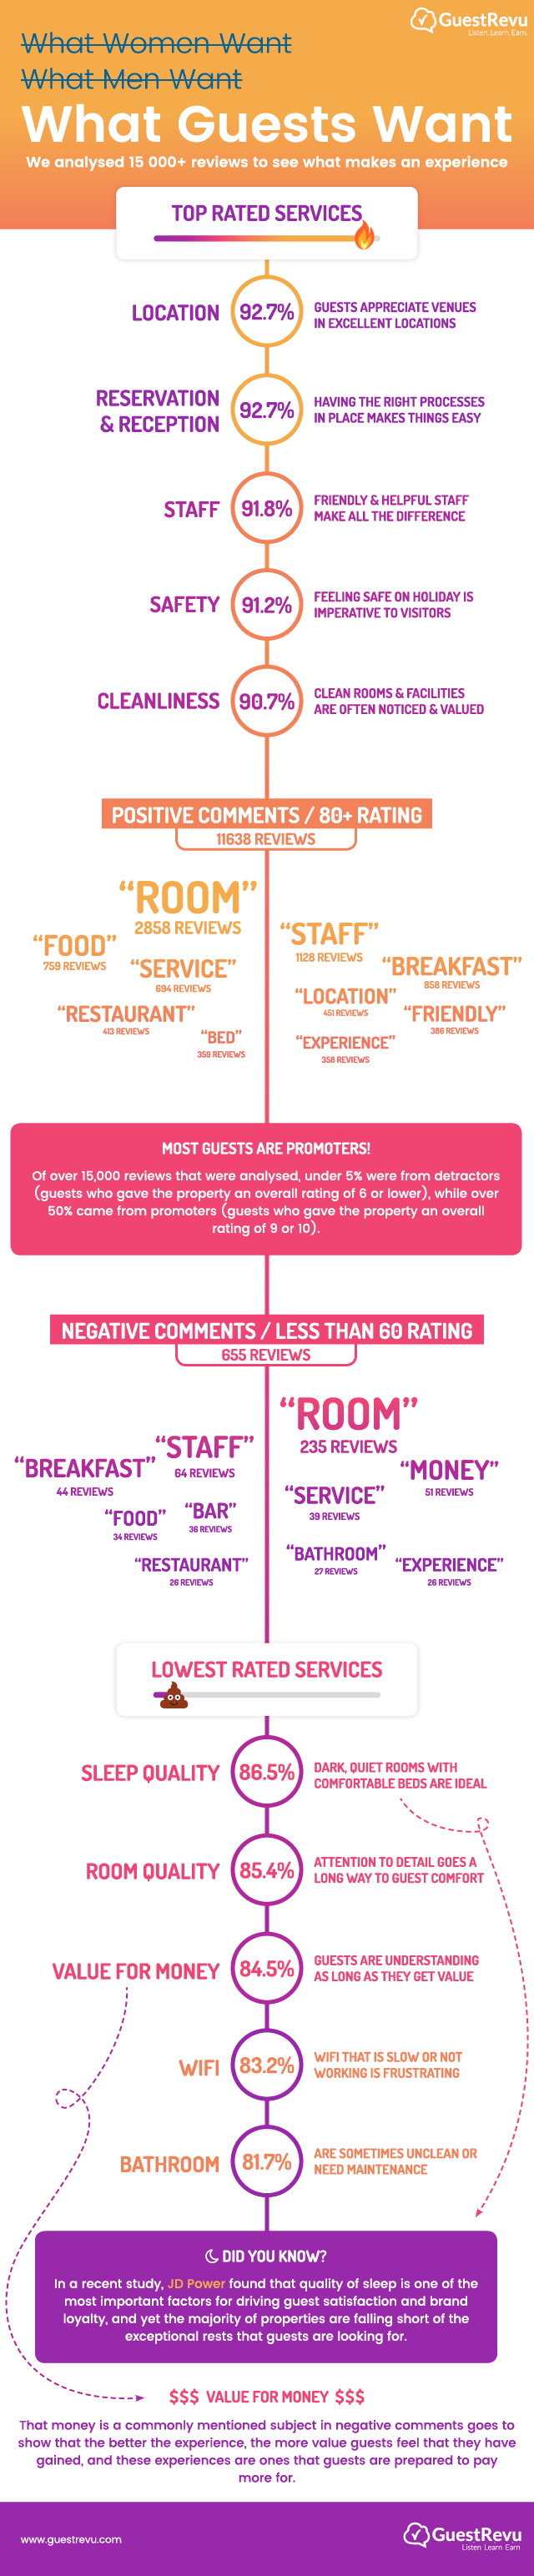 what-guests-want-infographic-GuestRevu